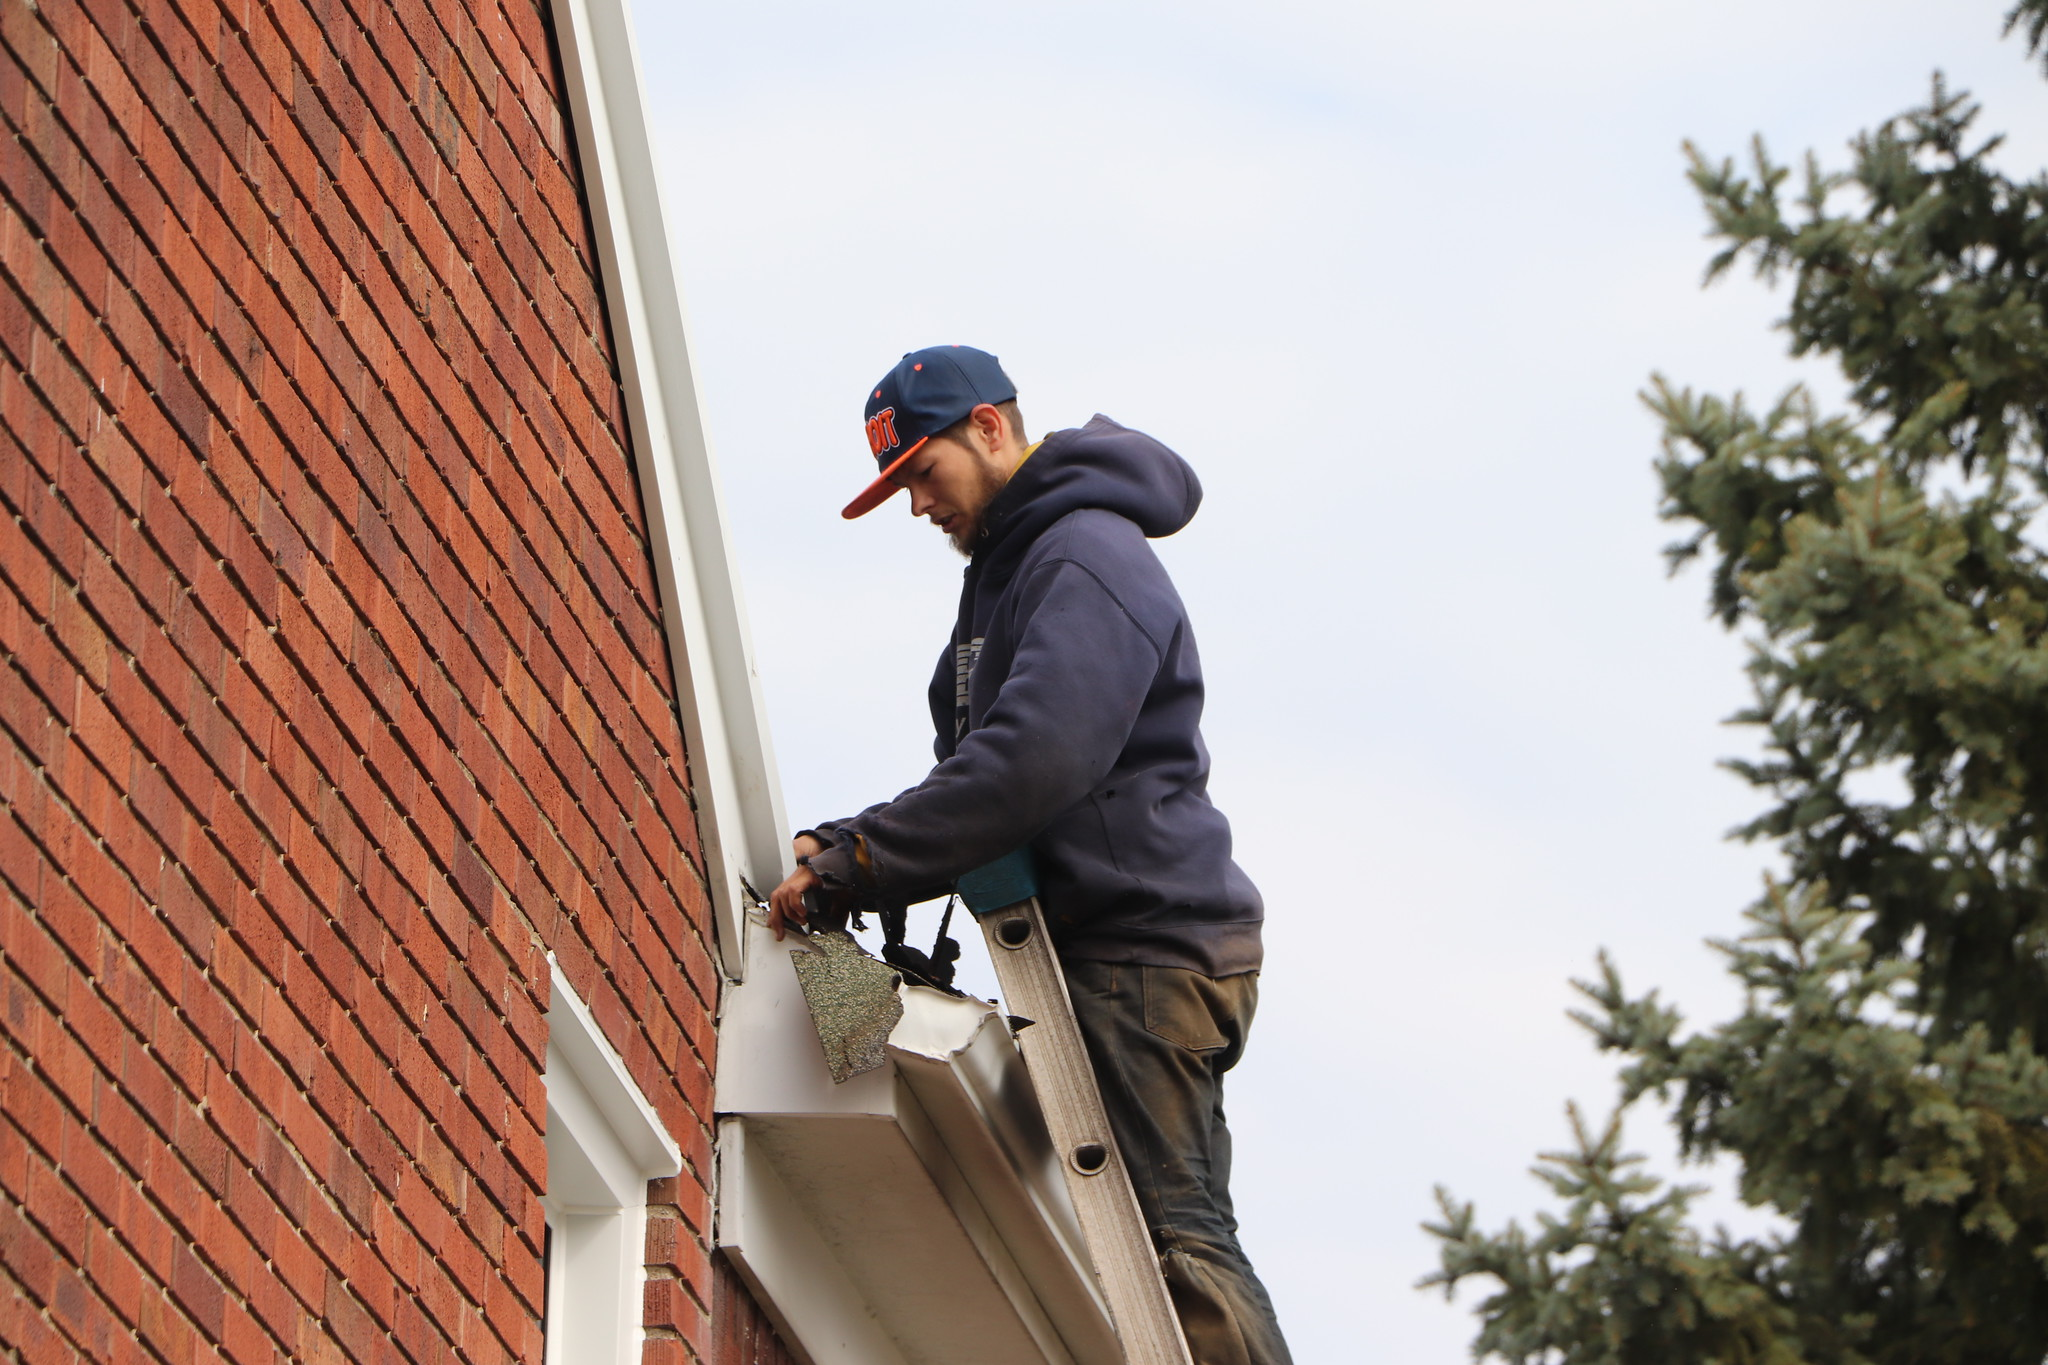 Roofing-flat-rock-MI-downriverroofers